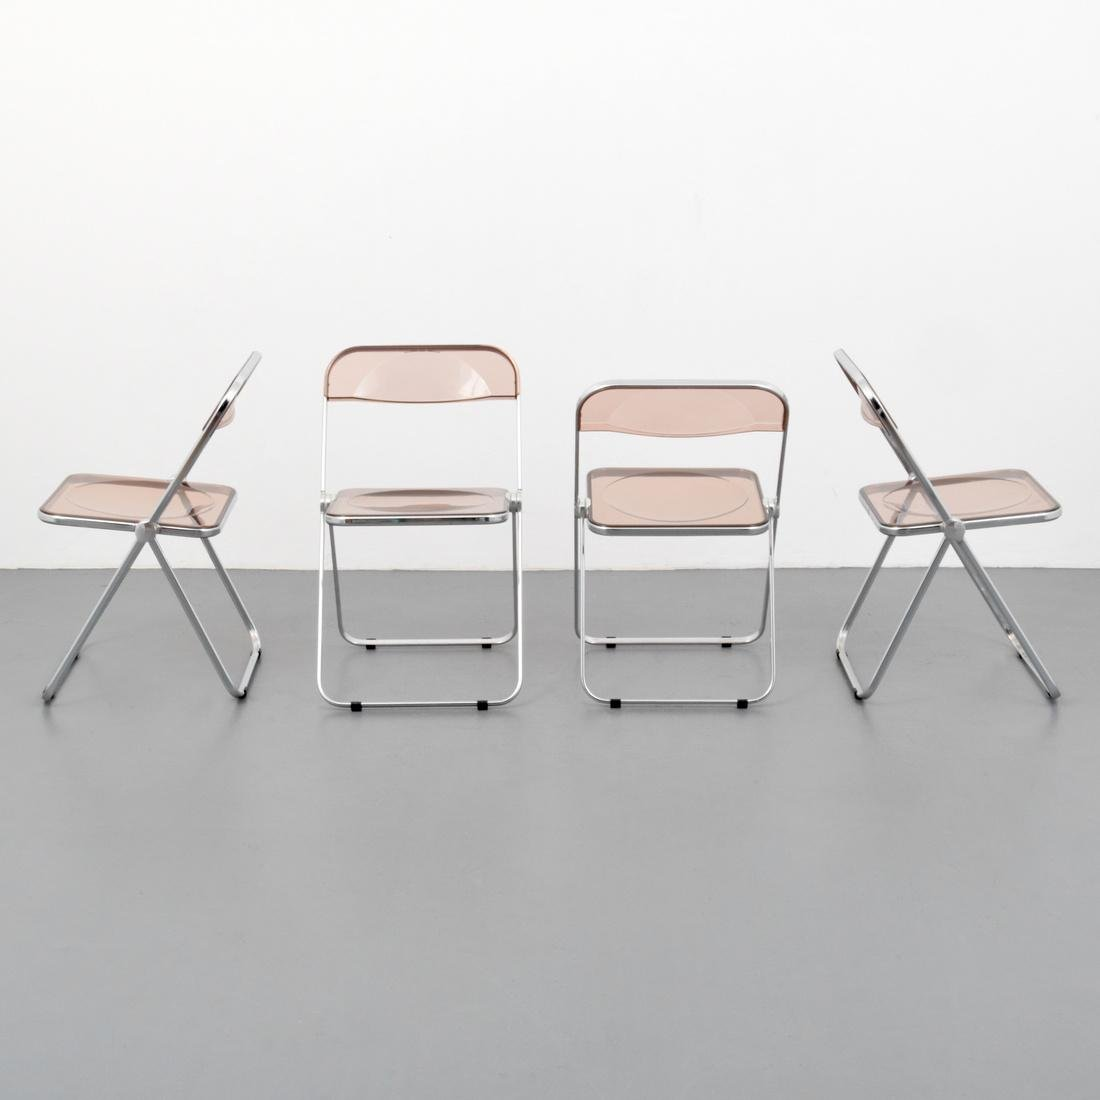 Giancarlo Piretti PLIA Folding Chairs, Set of 6 - 3